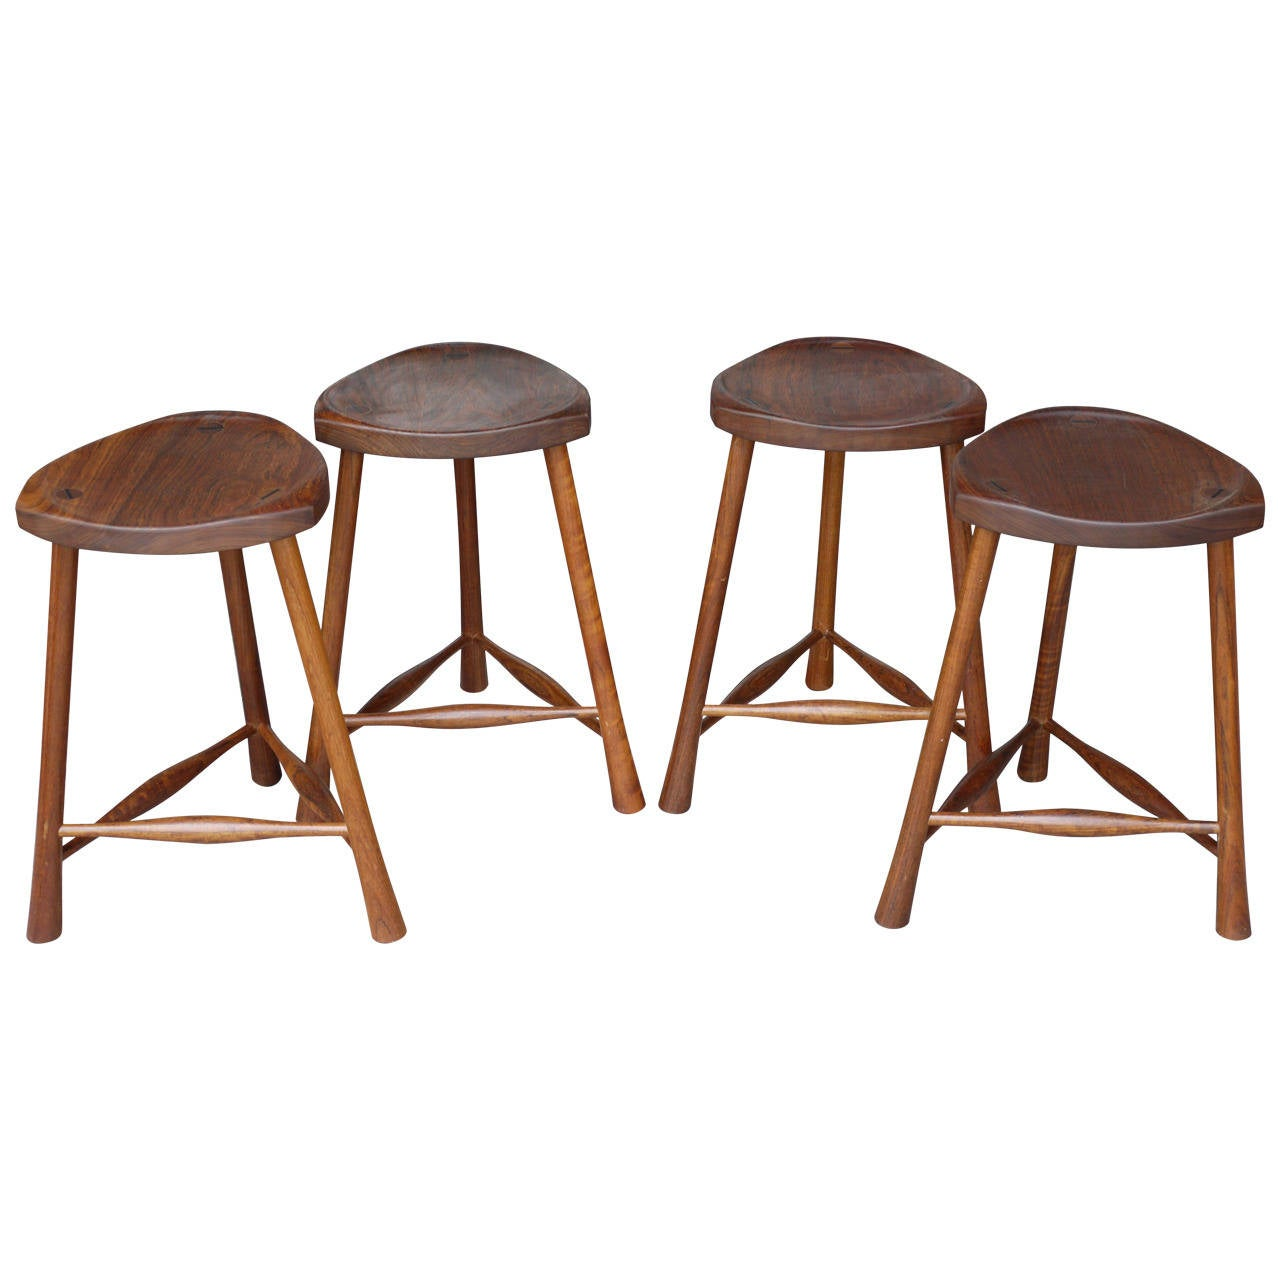 Modern Counter Height Stools Set Of Four Walnut Studio Modern Counter Height Stools At